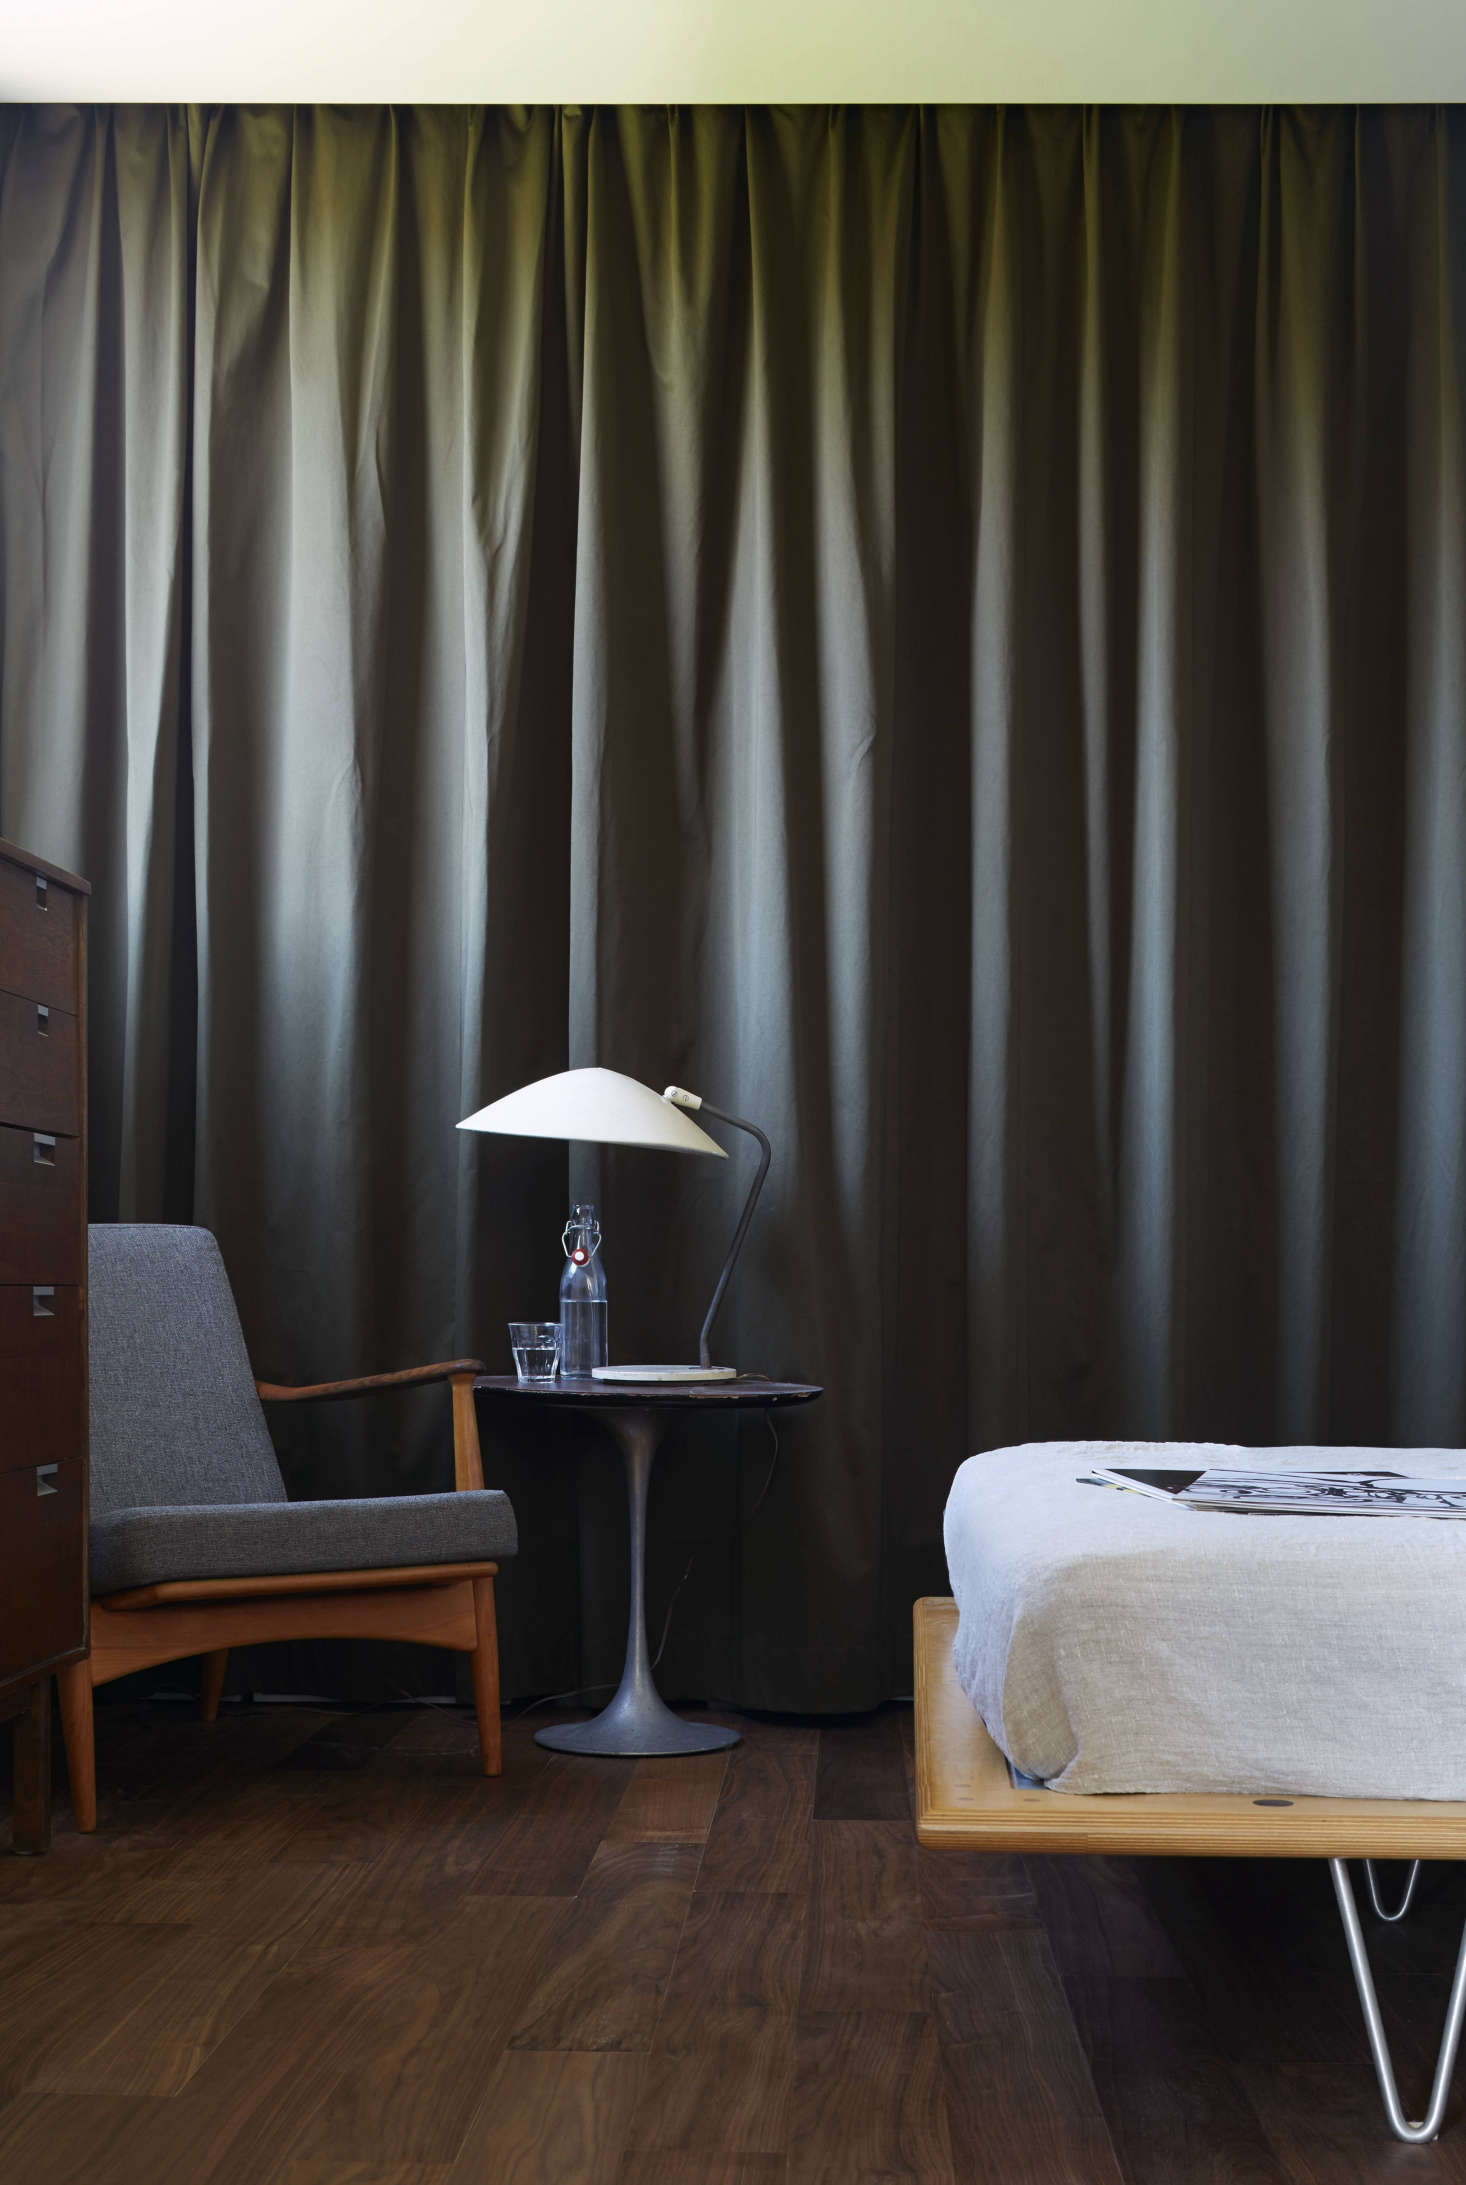 In the master bedroom, the closet is set off by olive-colored heavy cotton canvascurtains that hang from a ceiling track and conceal standard metal shelving. &#8